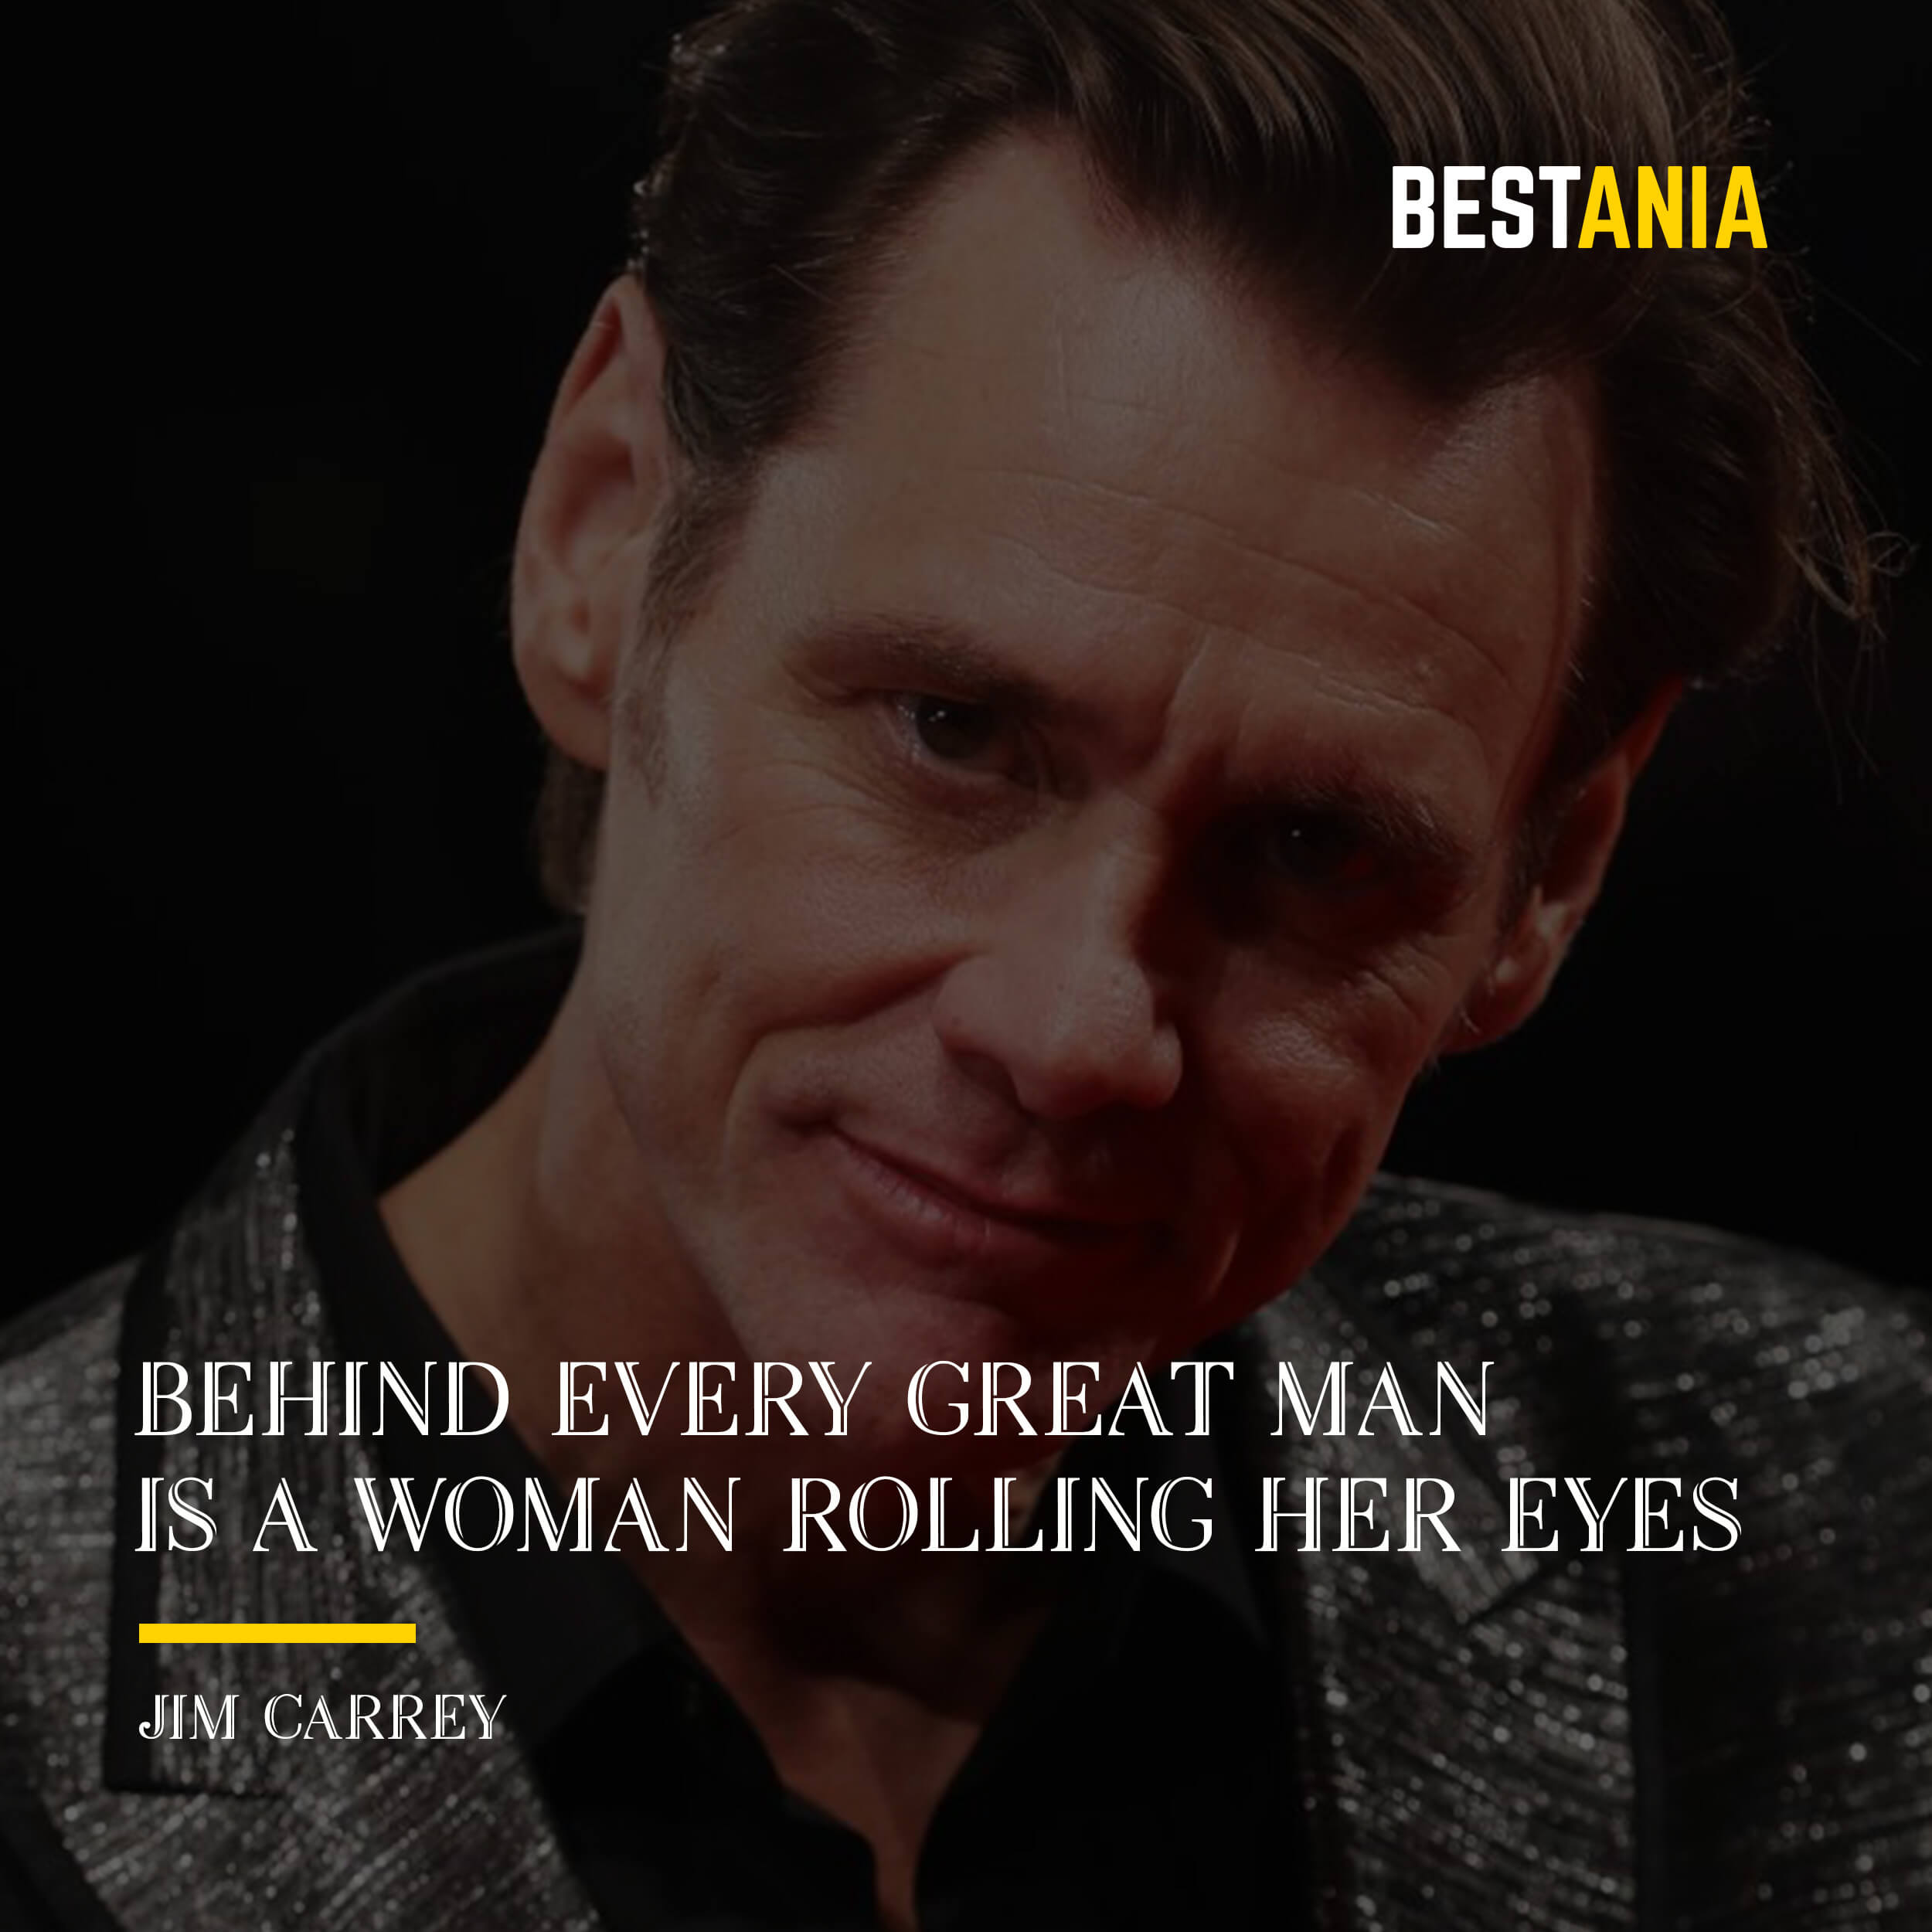 """BEHIND EVERY GREAT MAN IS A WOMAN ROLLING HER EYES.""  JIM CARREY"